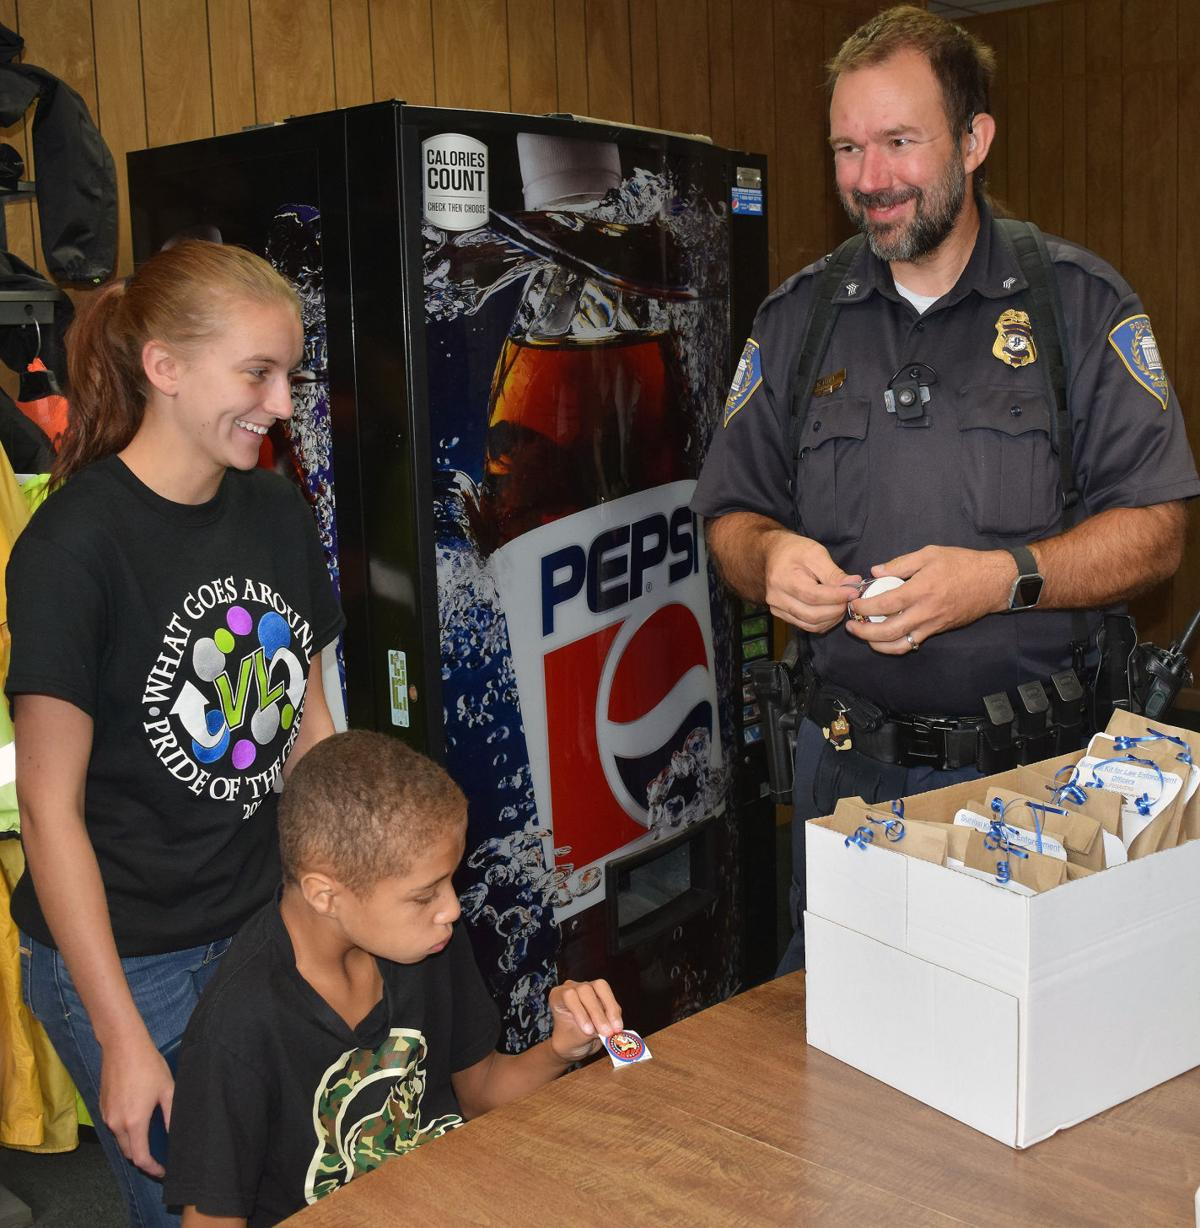 LHS Class Provides Care Packages To Local Law Enforcement